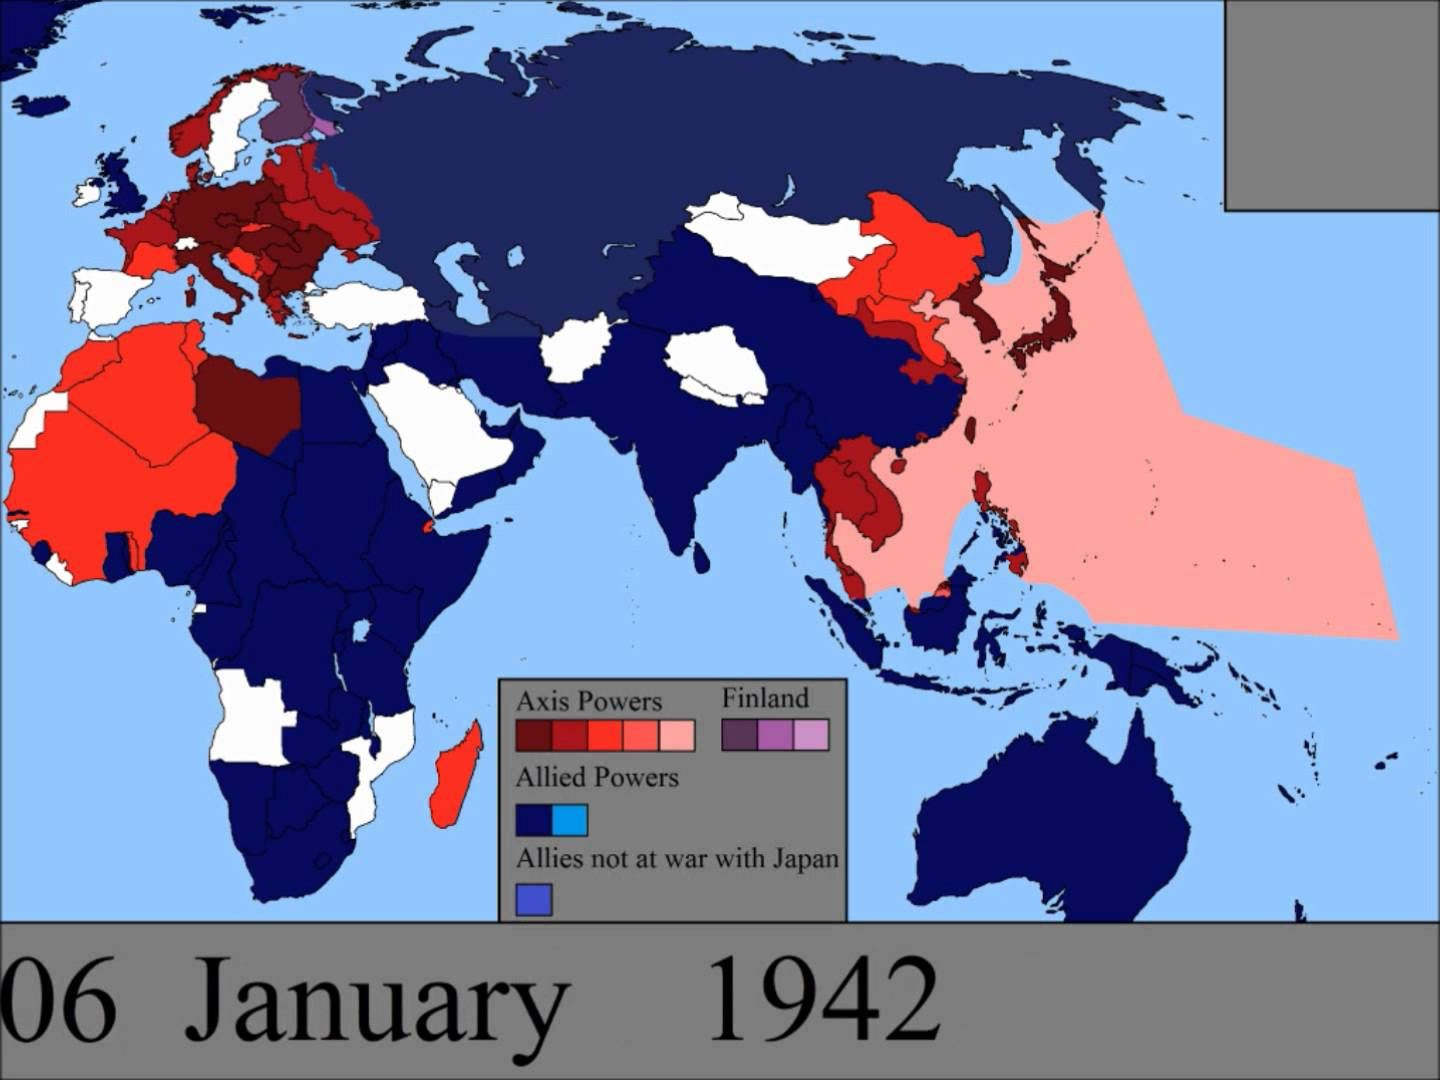 World war ii in europe and the pacific every day see the changing world war ii in europe and the pacific every day see the changing front gumiabroncs Image collections